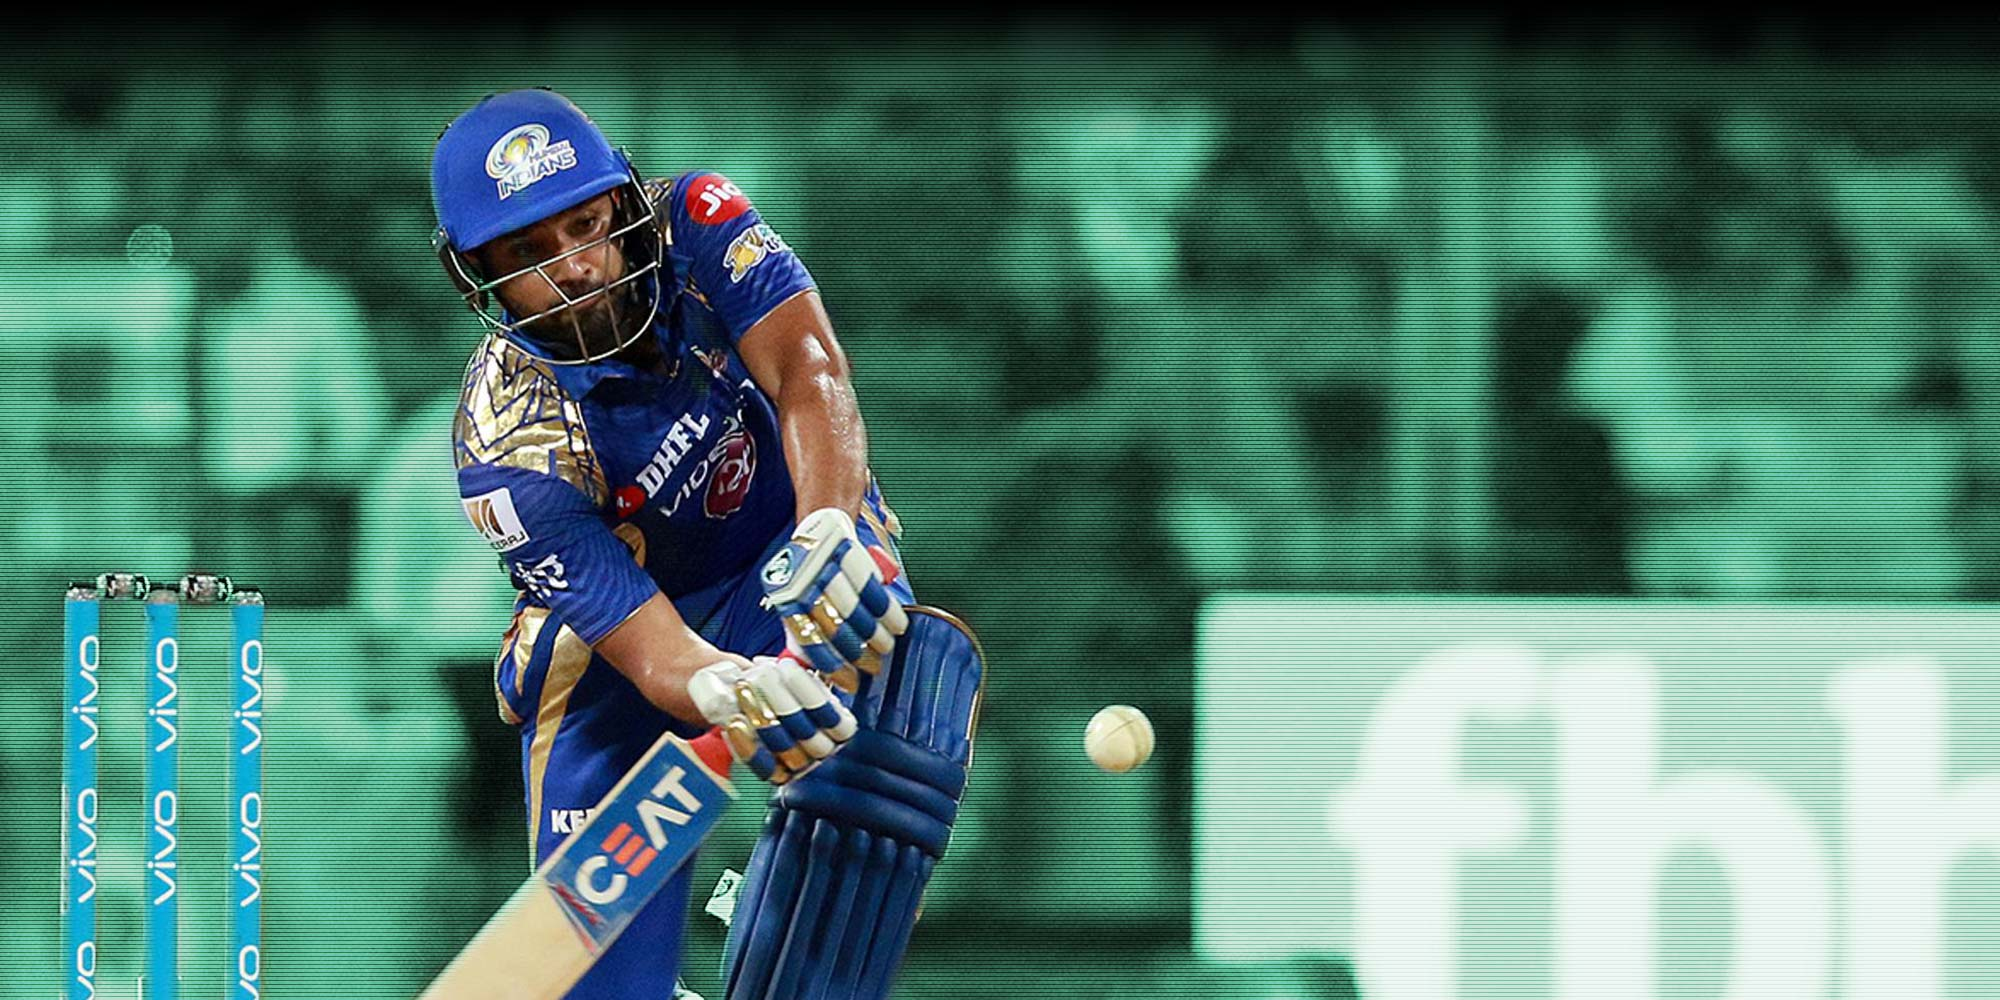 IPL TIPS AND BETTING STRATEGIES